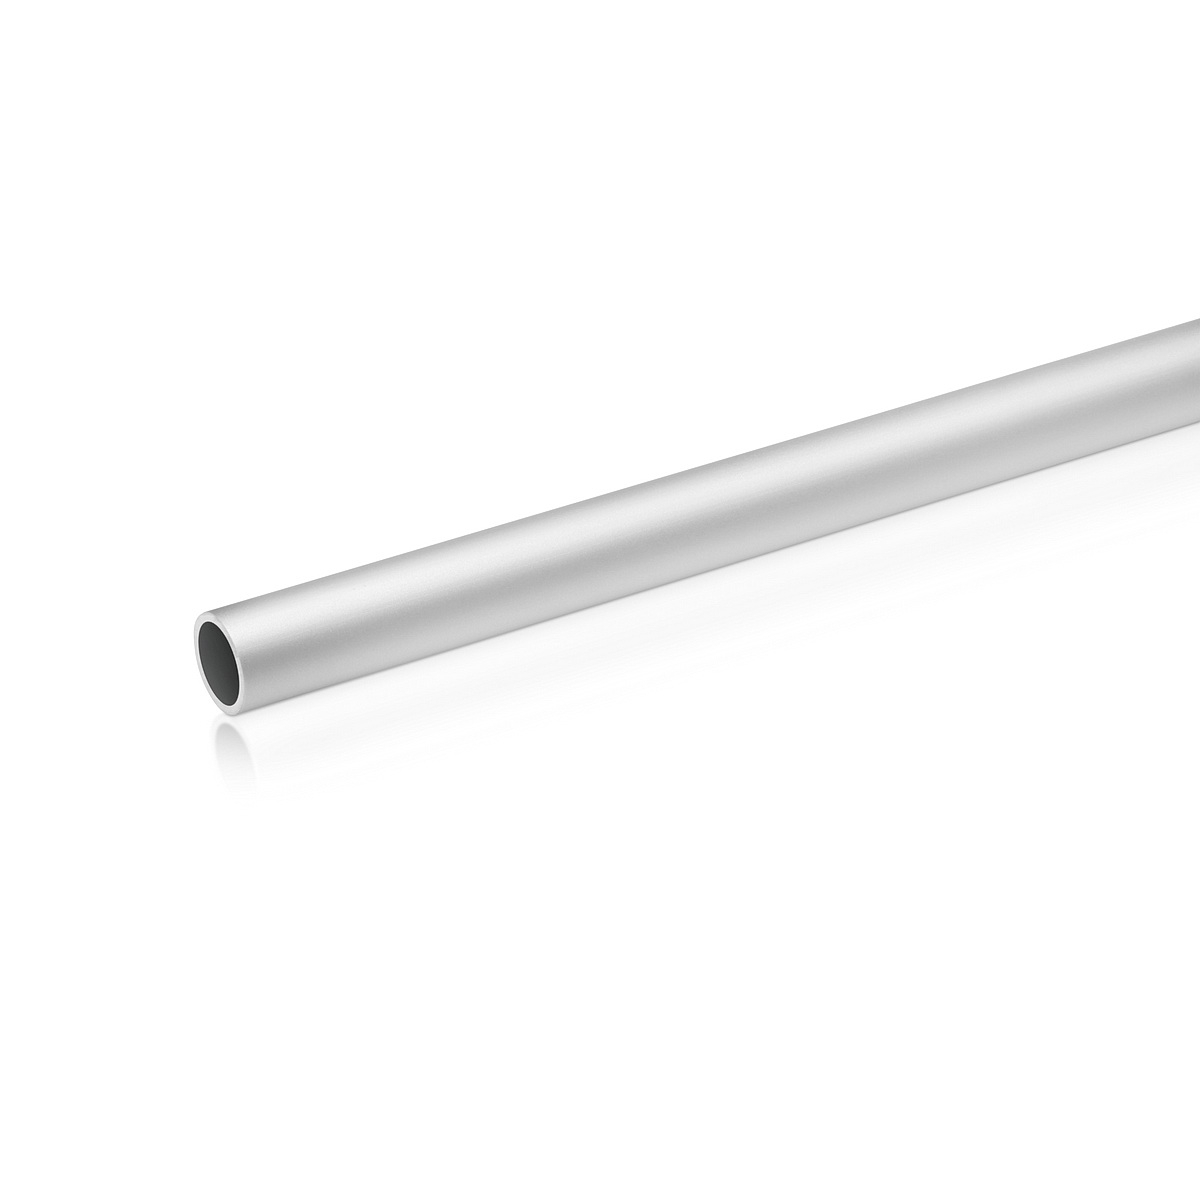 5/8'' Aluminum Clear Anodized Pipe Thick: 1/16'' (1.5mm) , Length: 36'' (Inside use only)